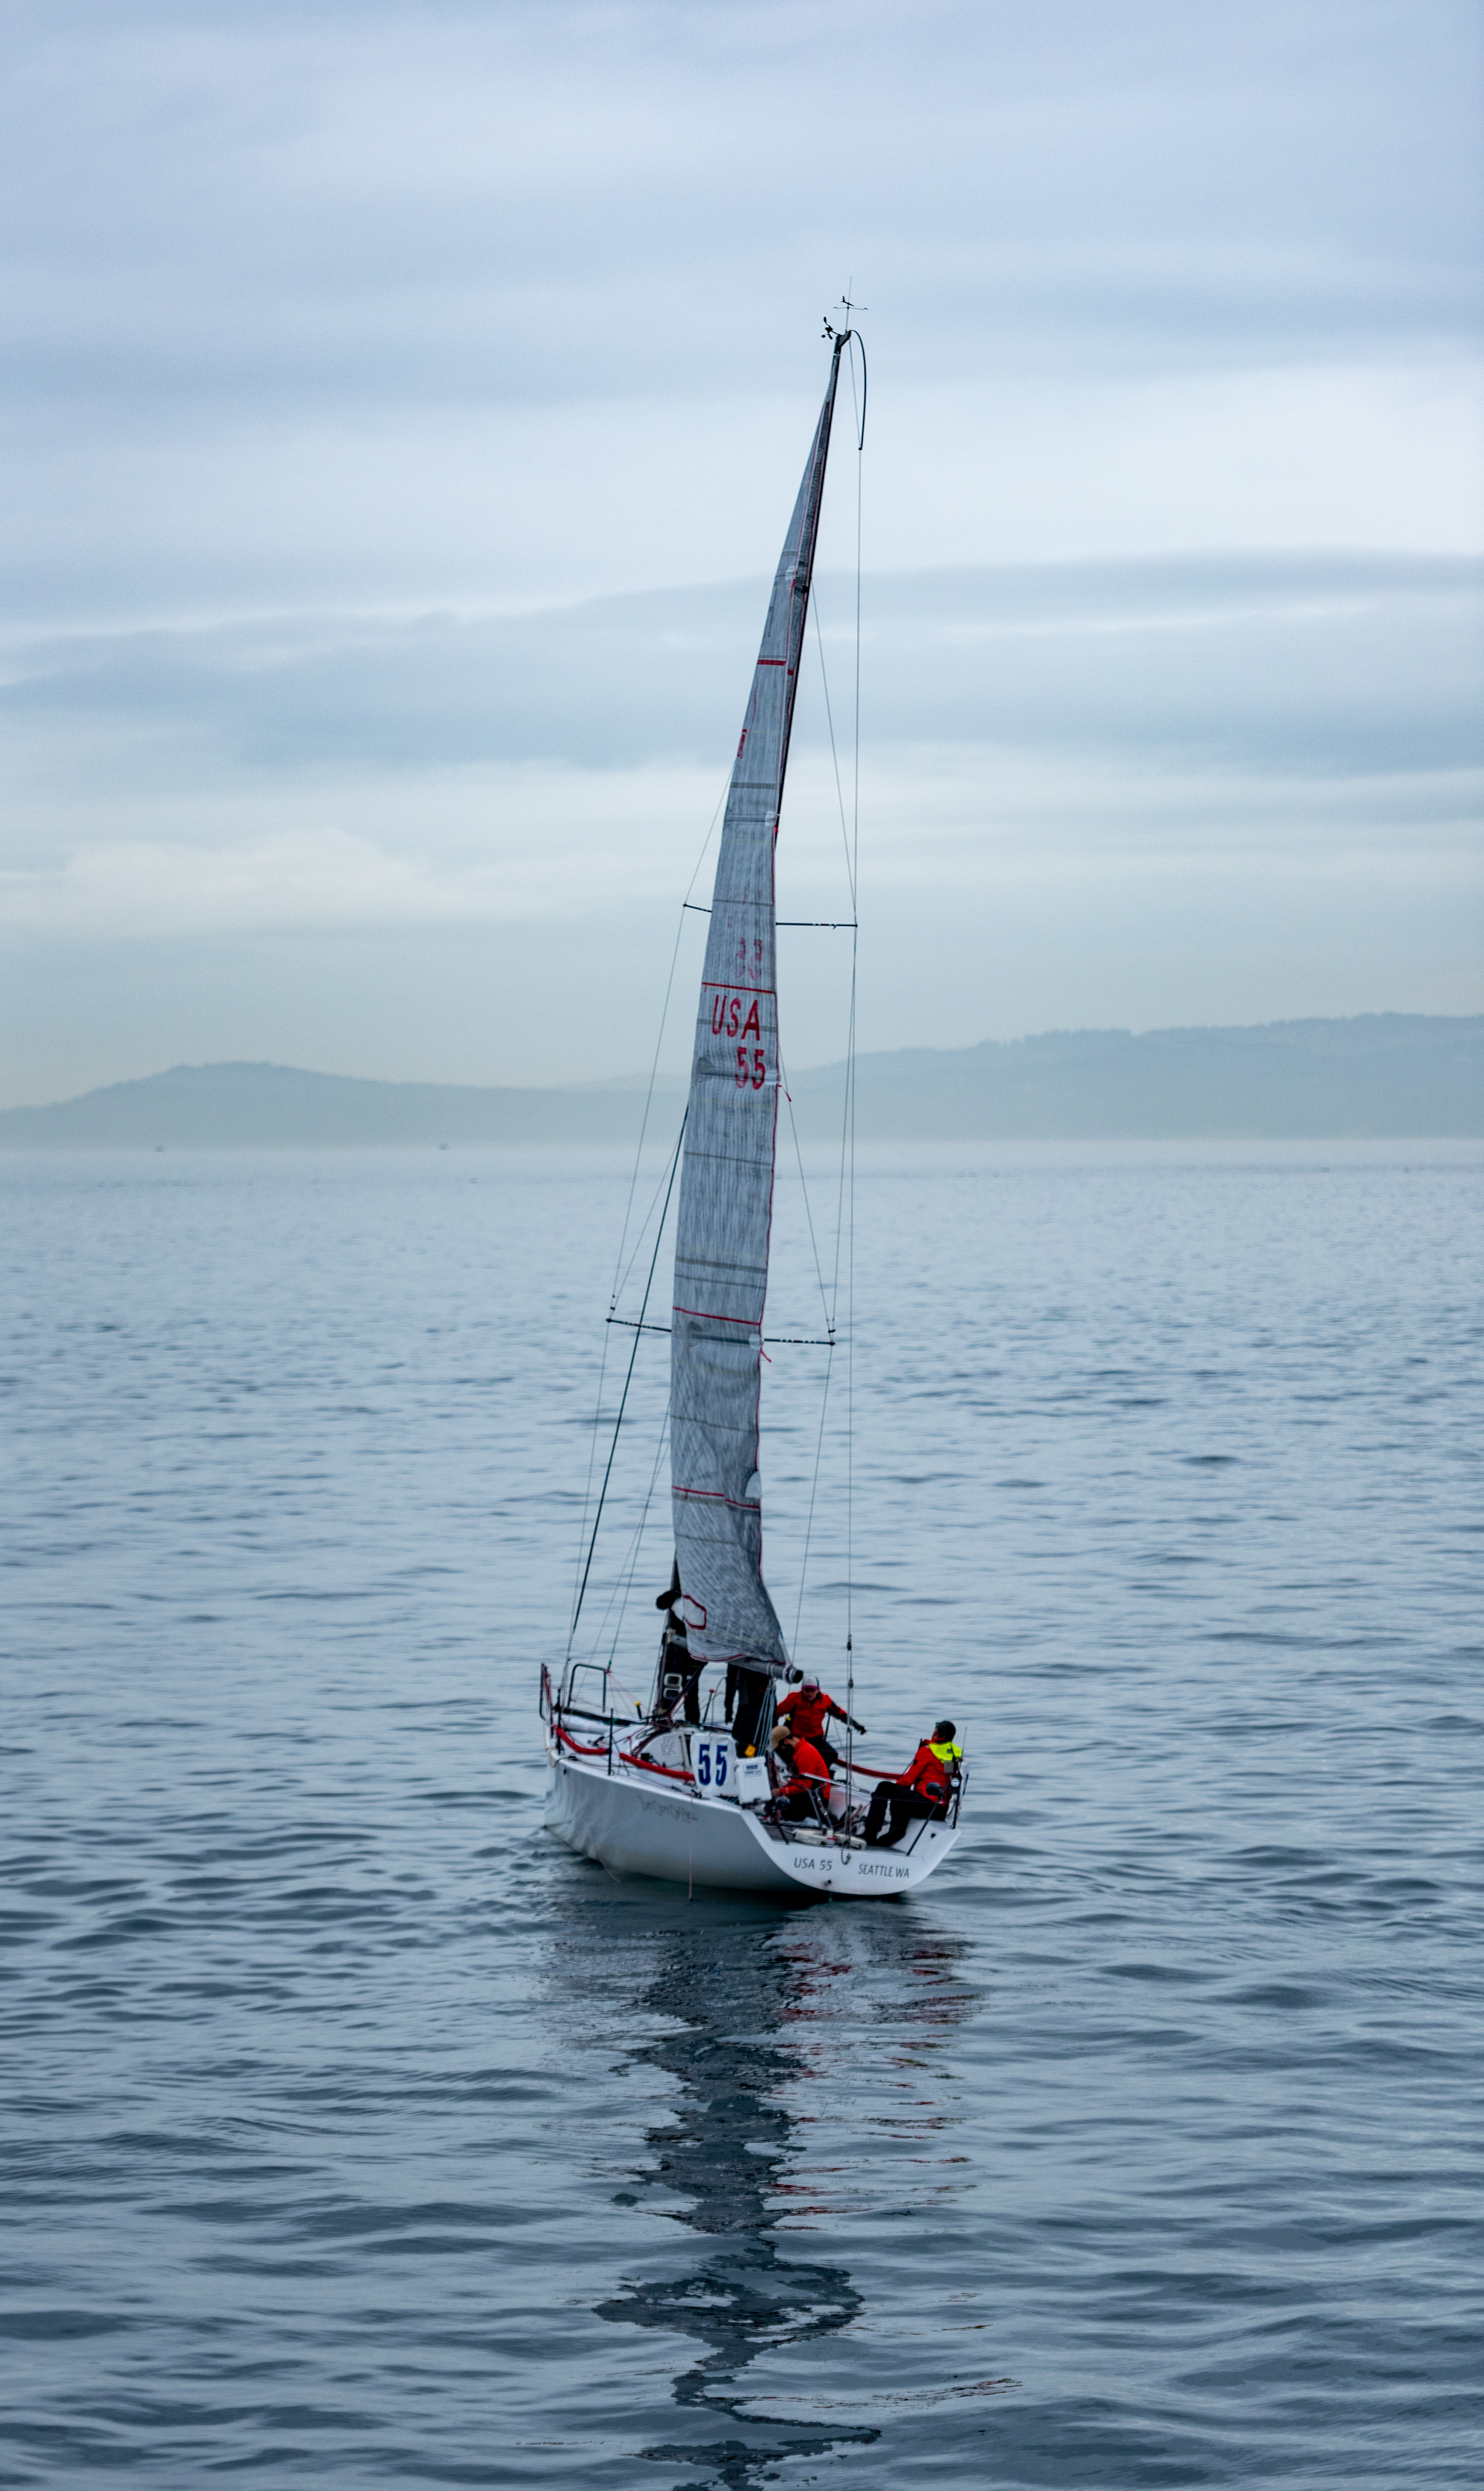 Swiftsure-25-May-2019-RMS-Media-by-Rob-Porter-13